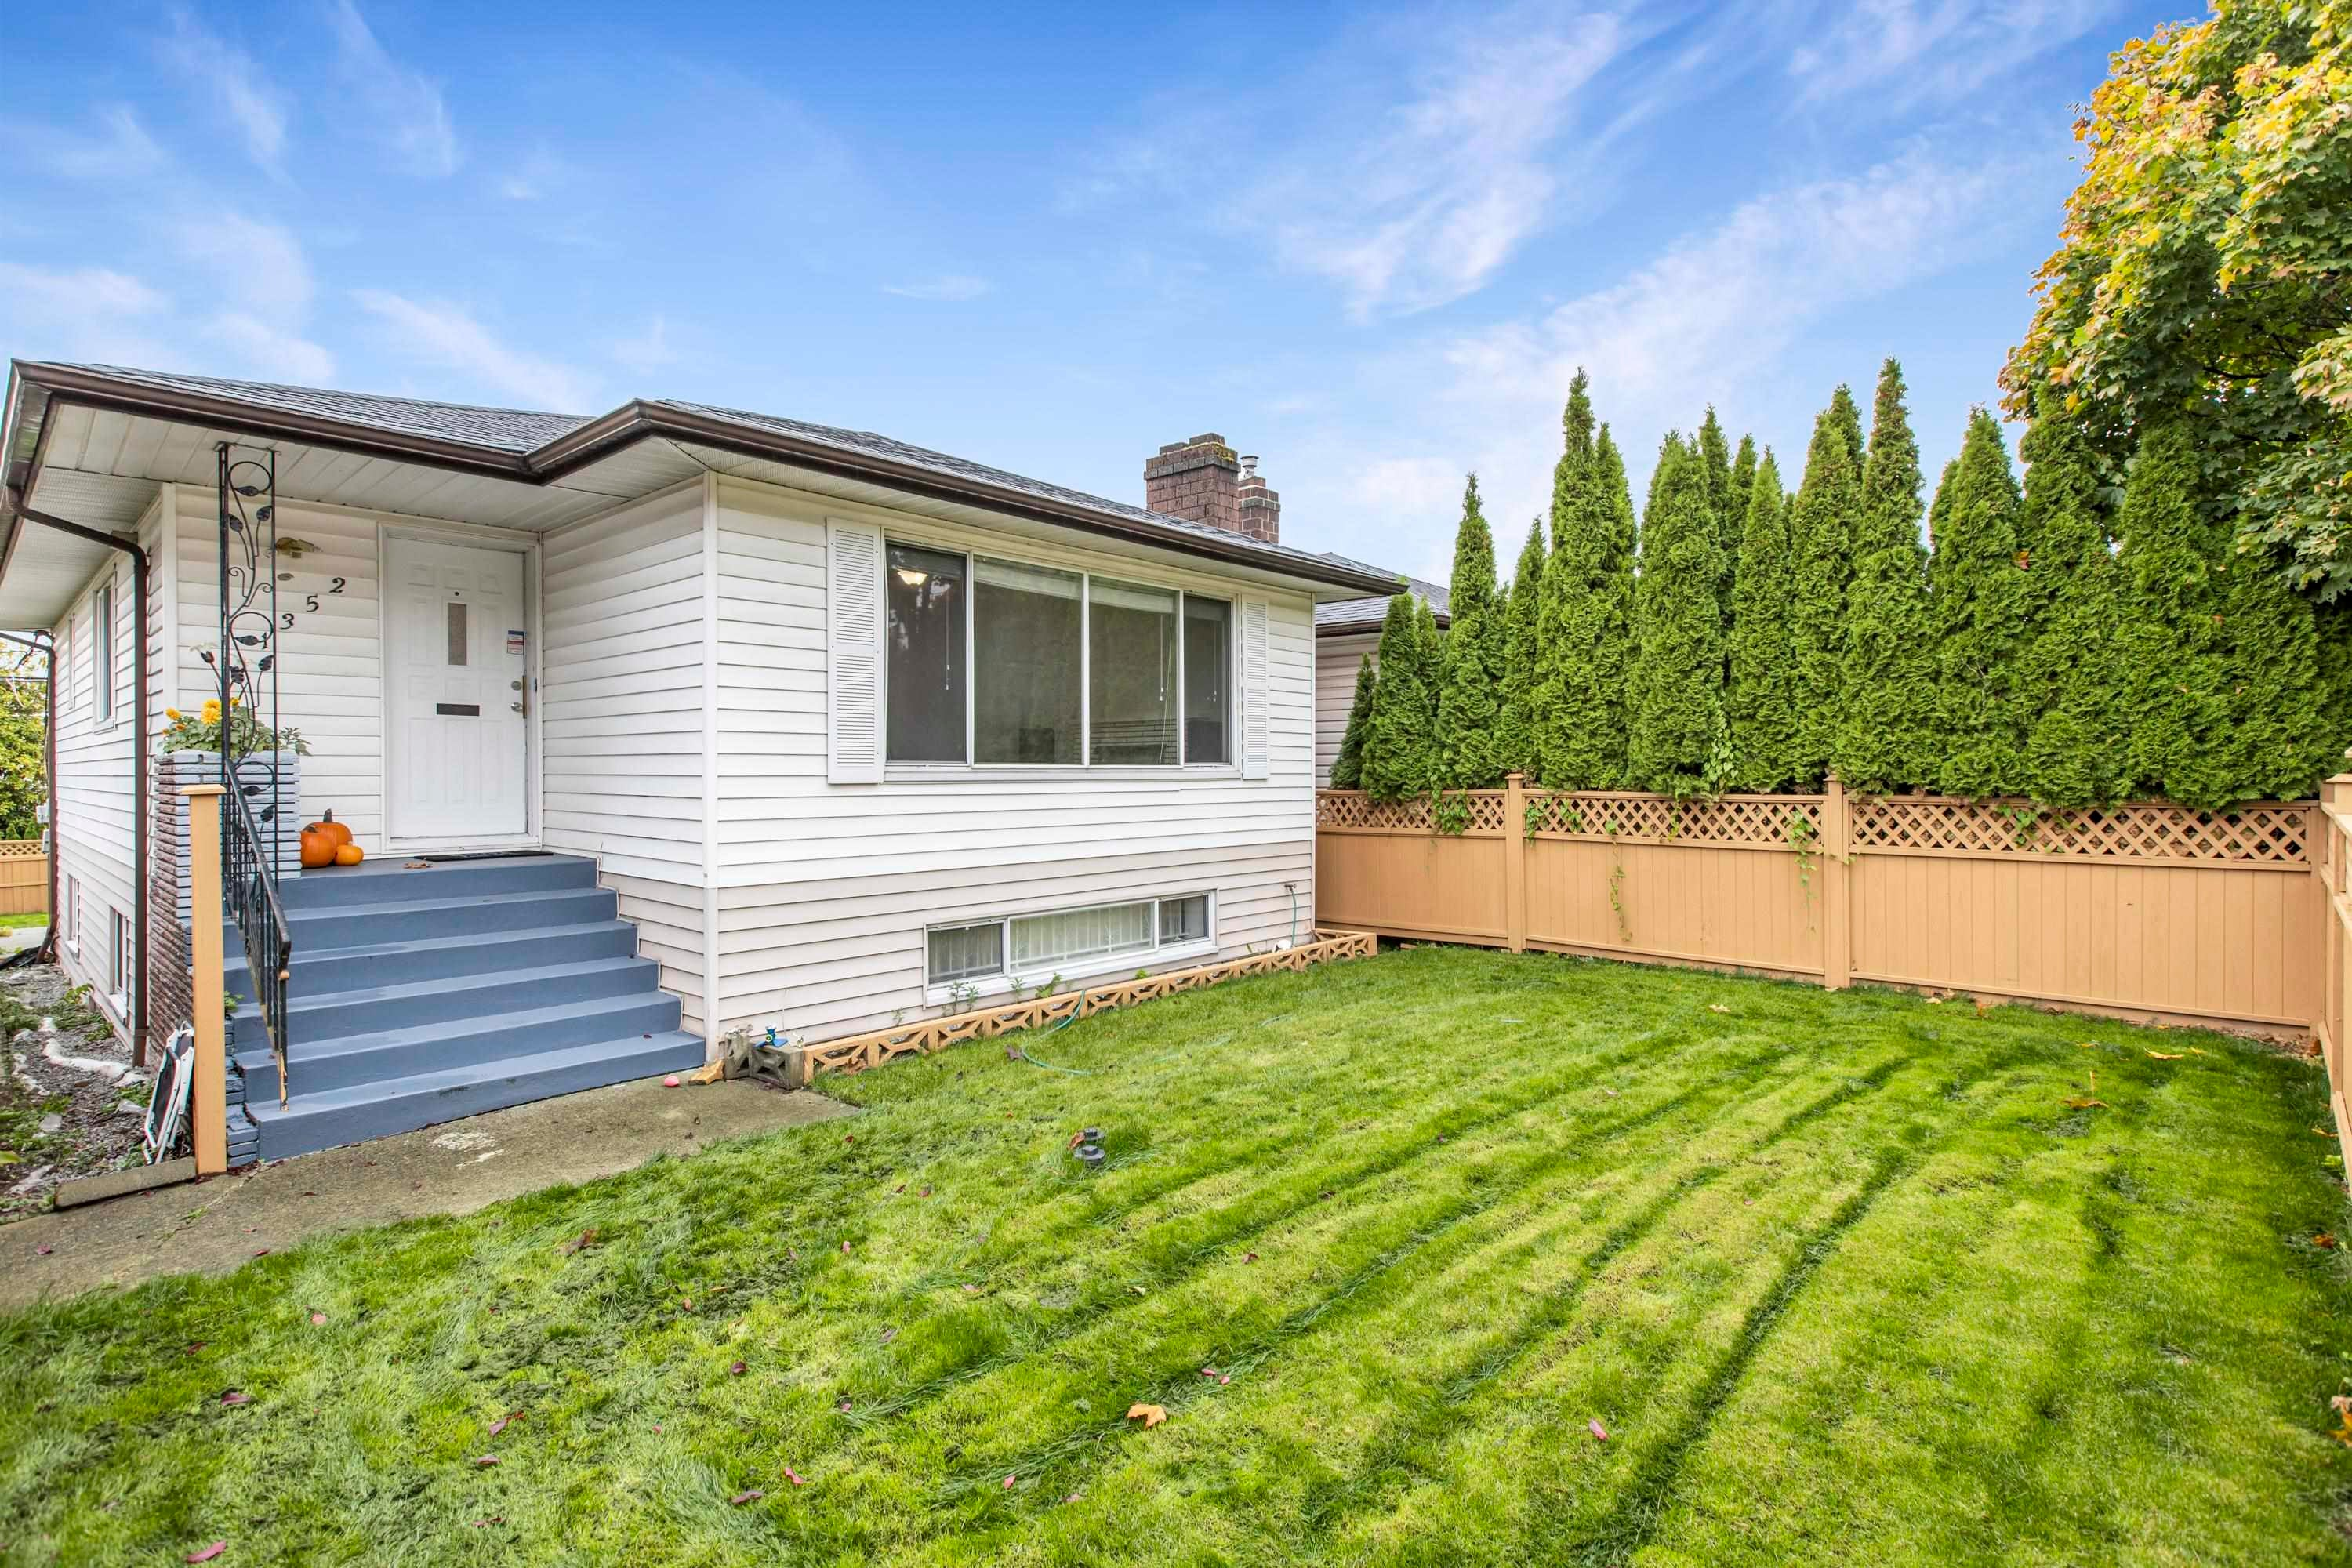 1352 E 57TH AVENUE - South Vancouver House/Single Family for sale, 4 Bedrooms (R2625705) - #2